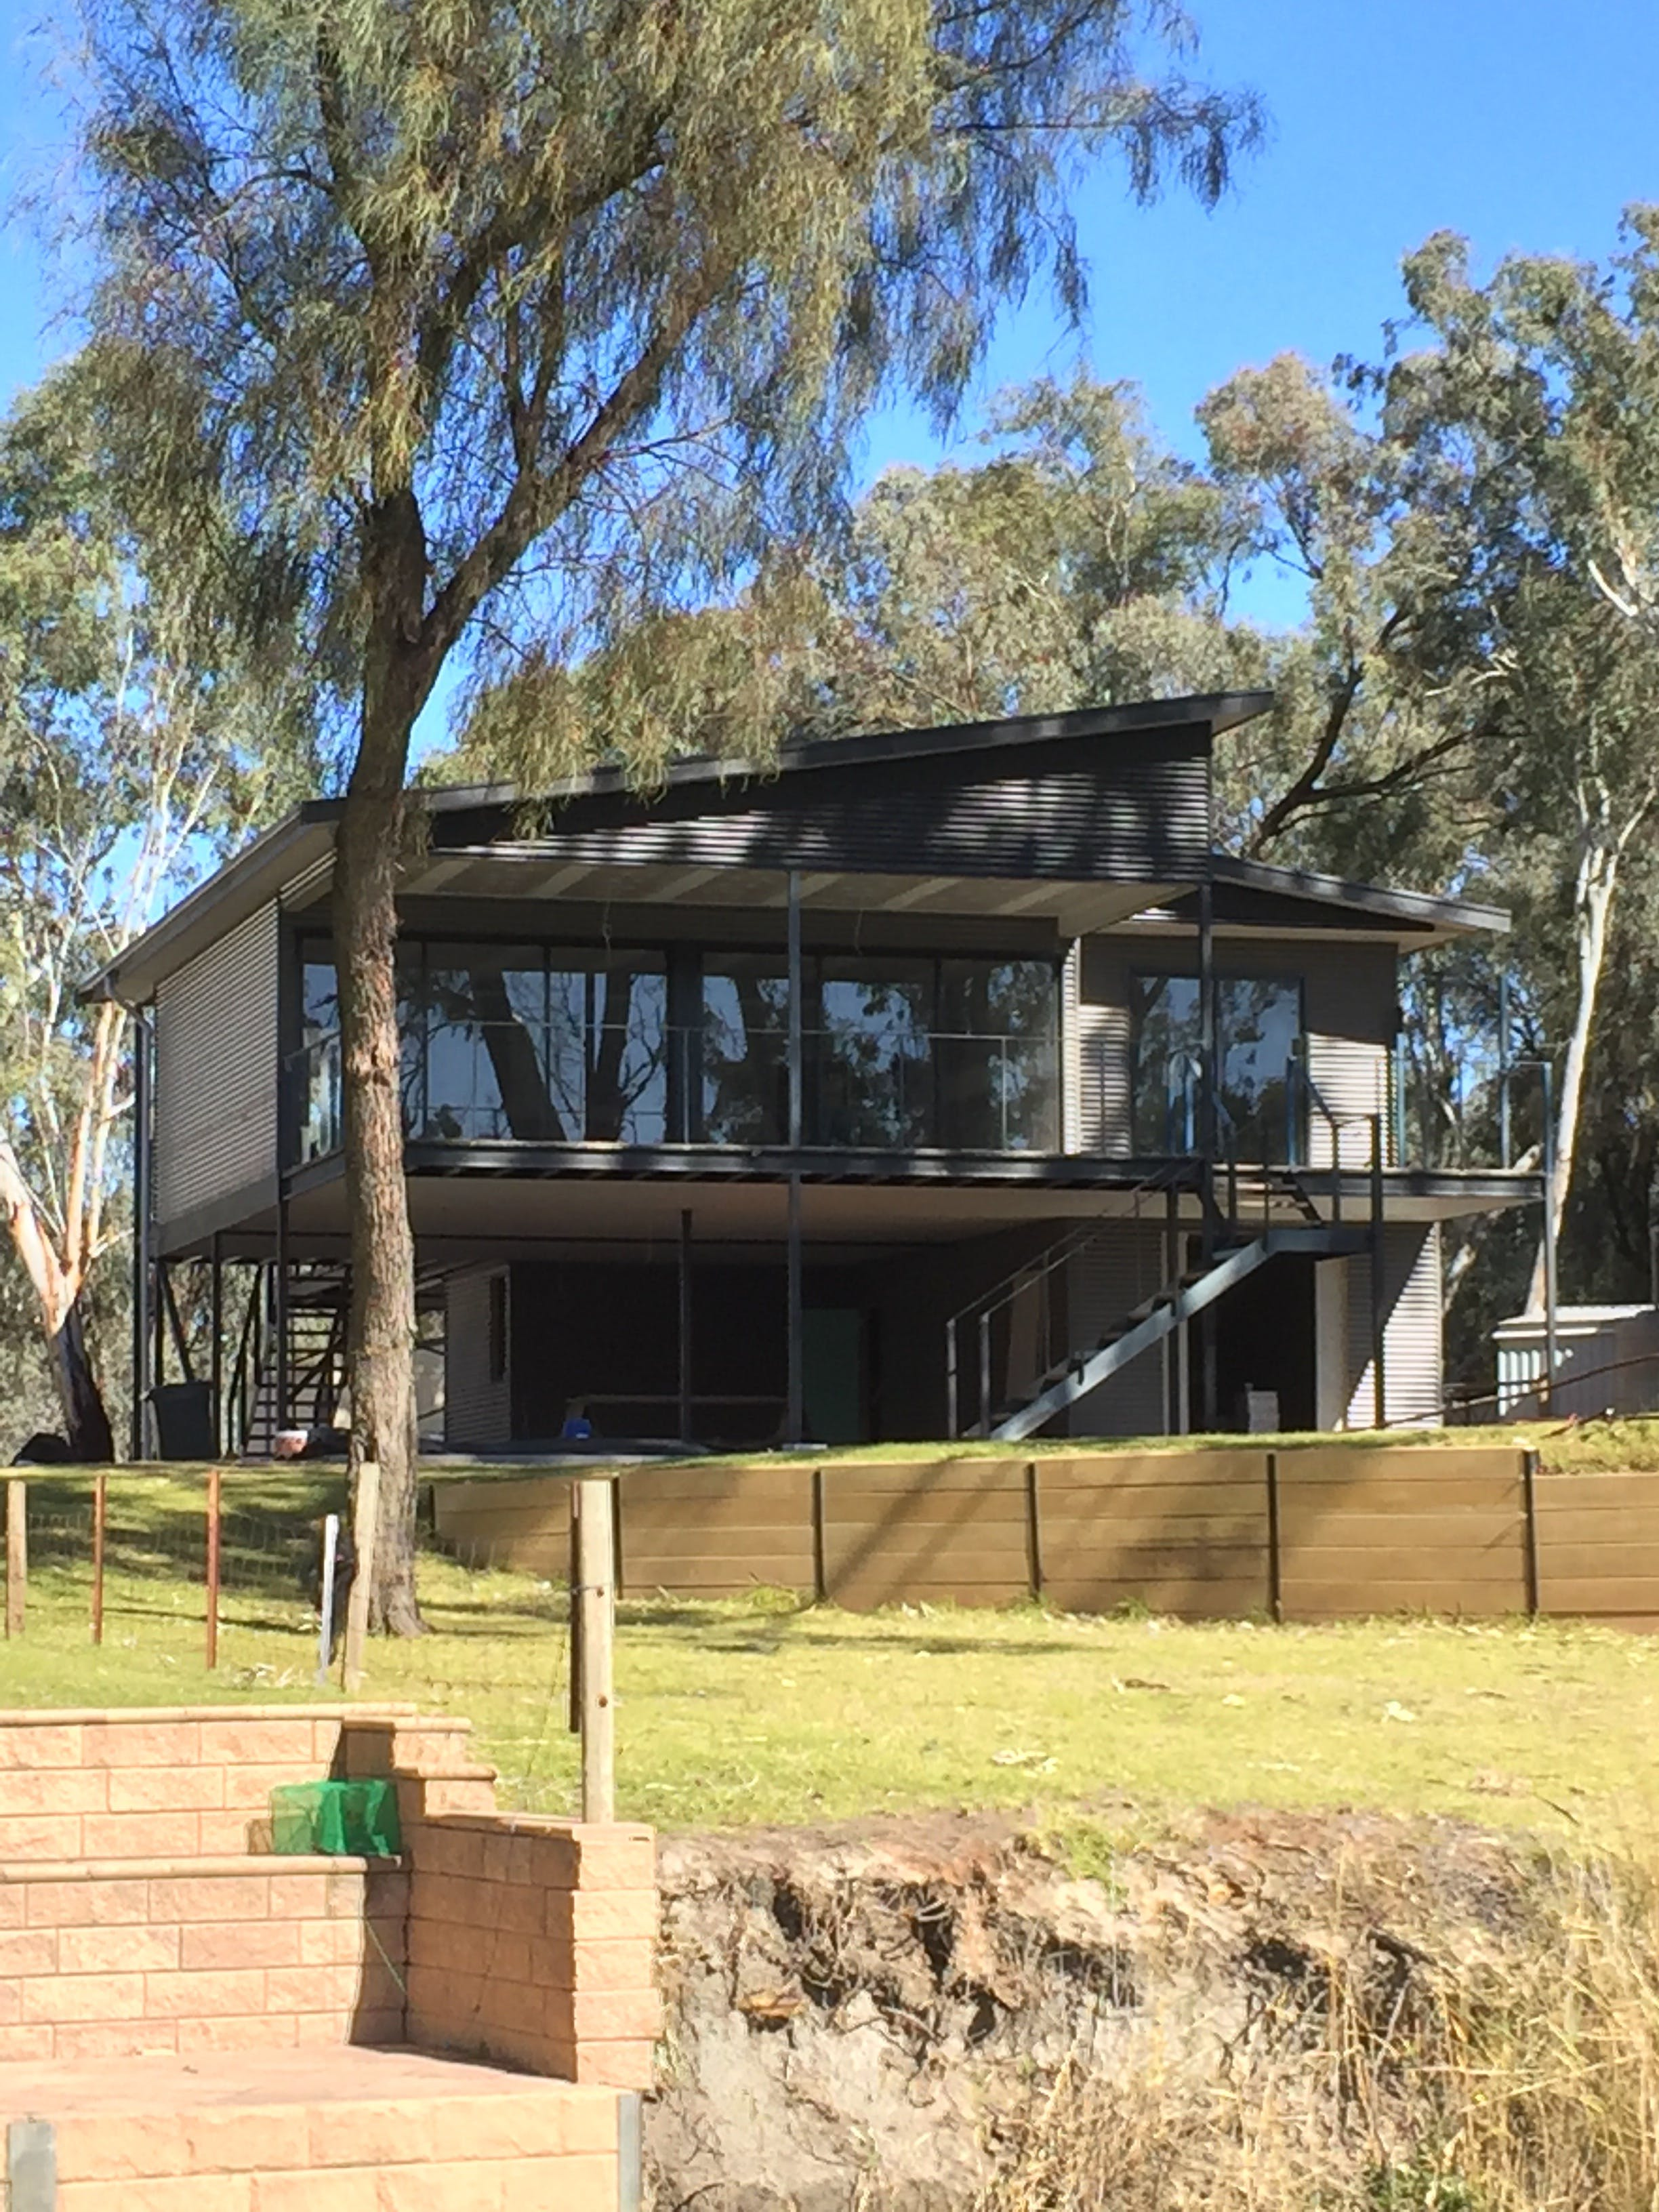 36 Brenda Park Via Morgan -River Shack Rentals - Accommodation in Brisbane